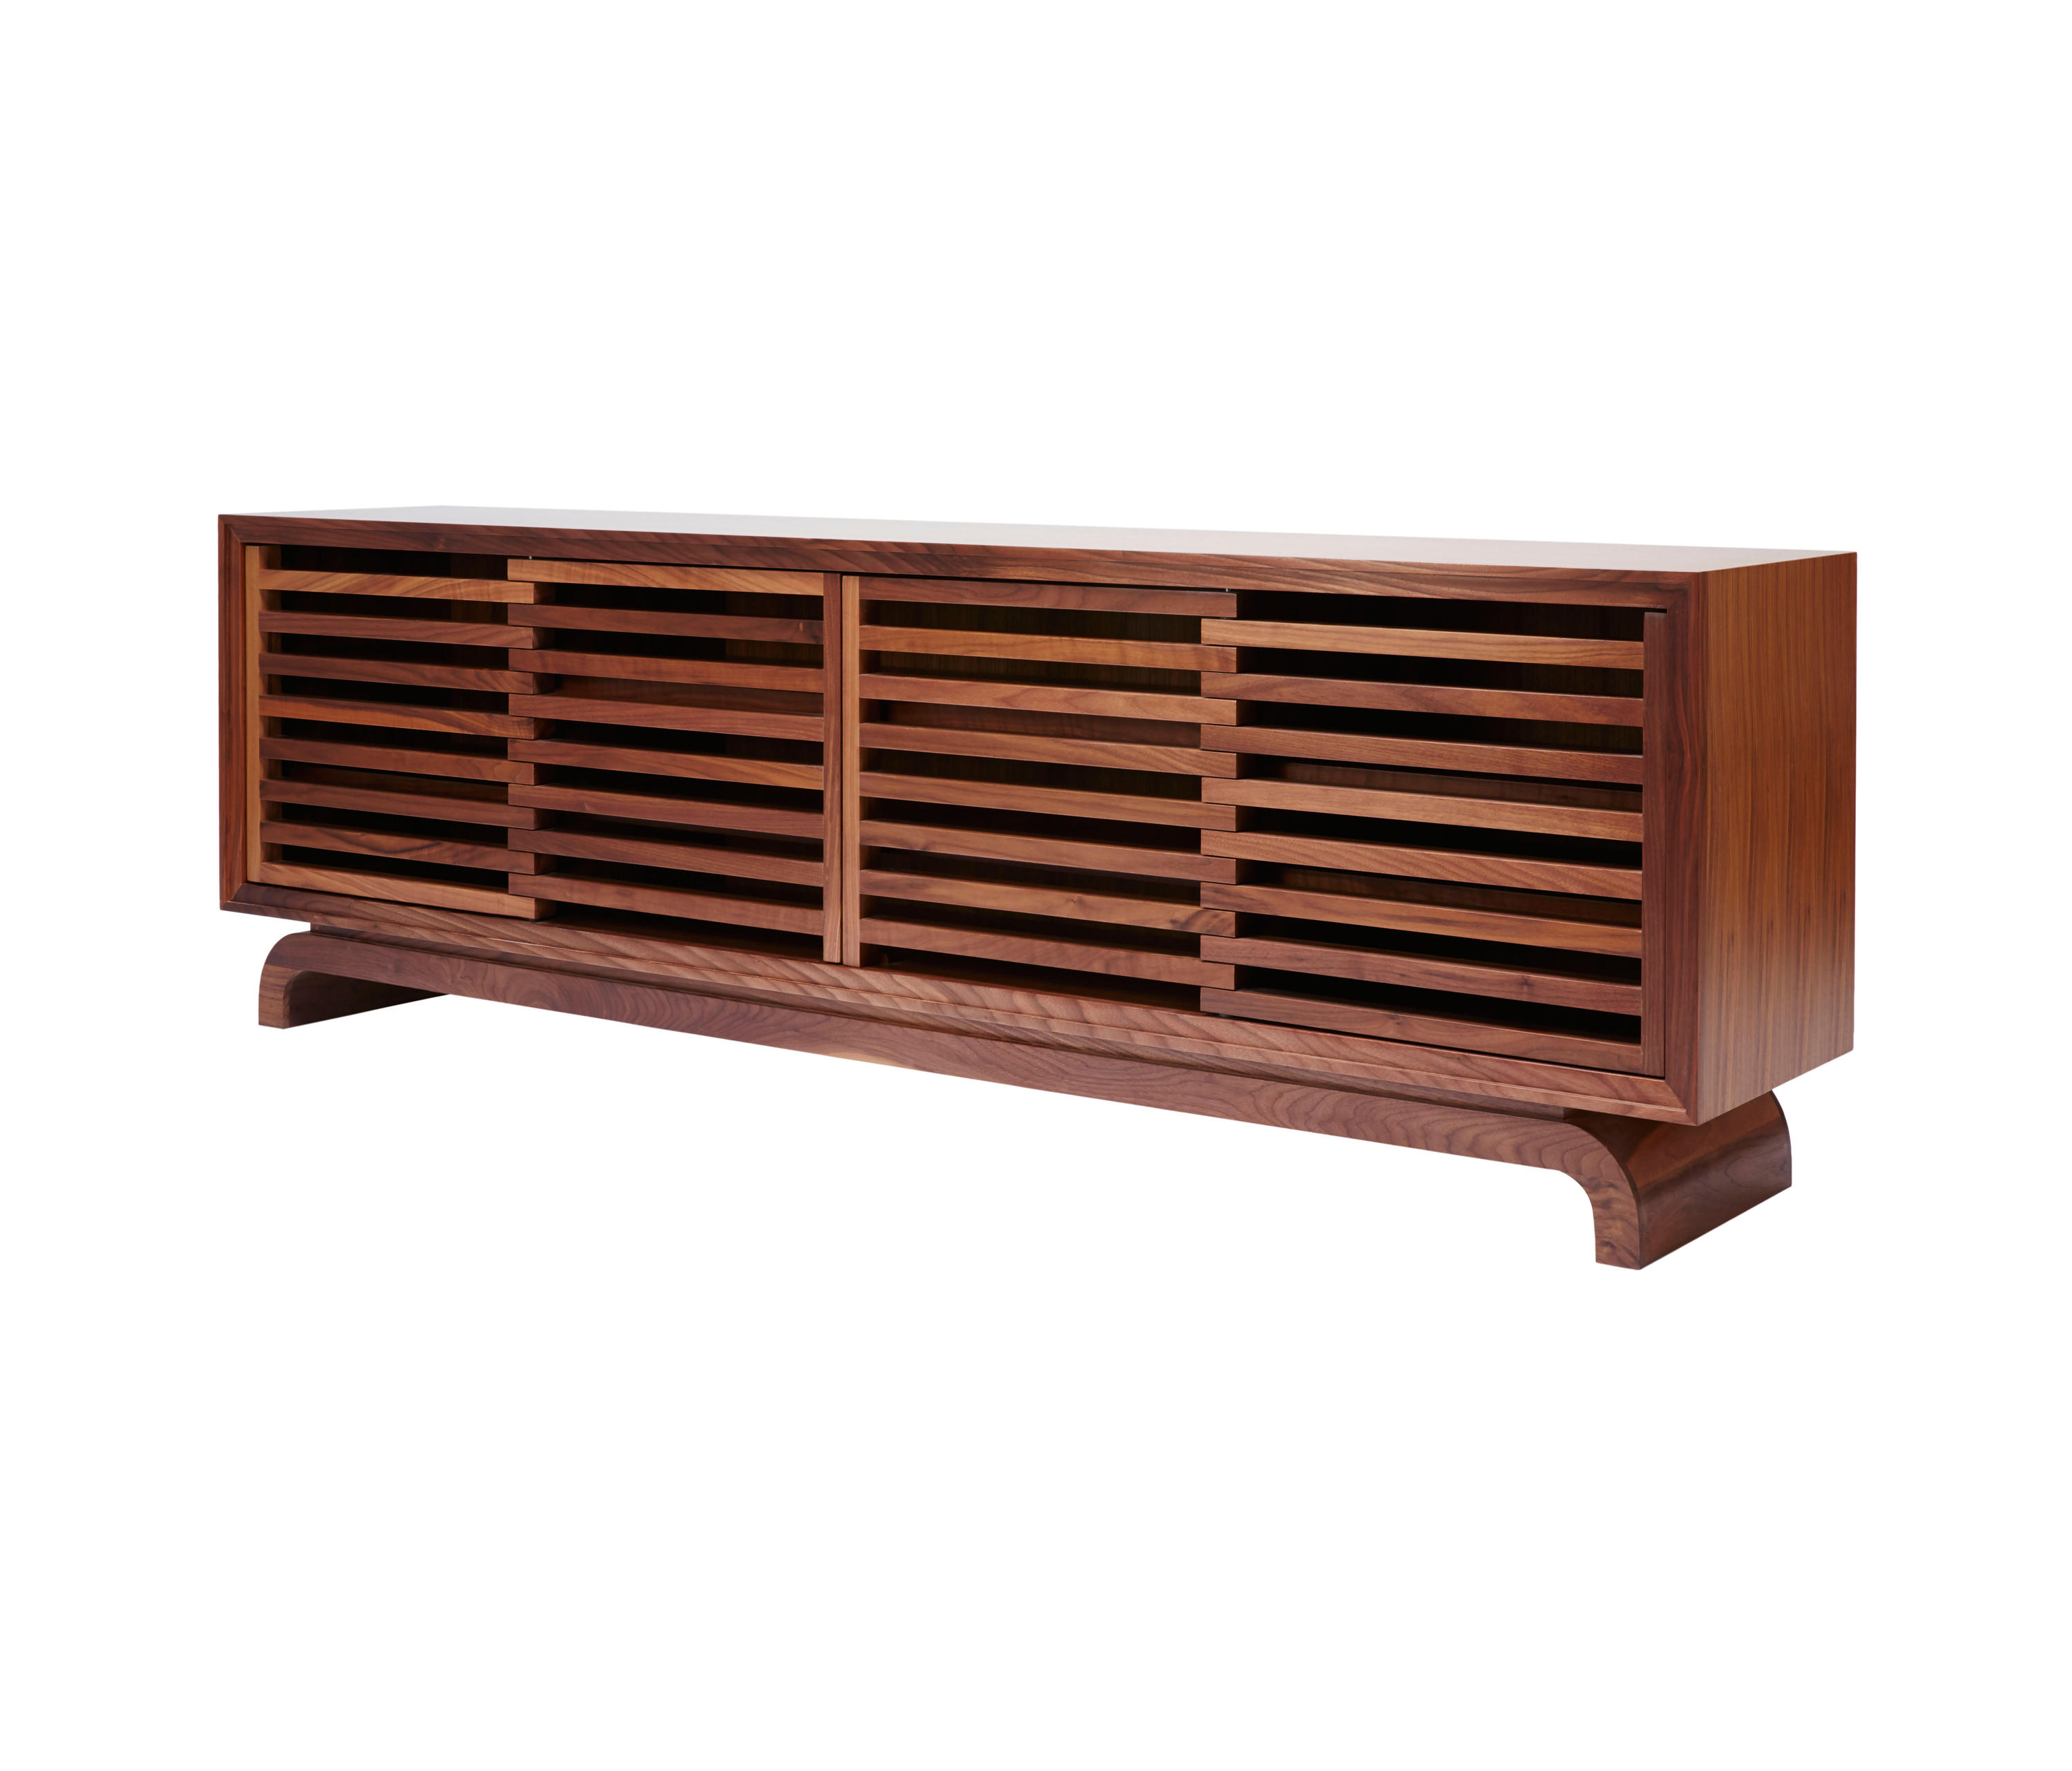 Tremendous Sven Credenza Sideboards From Douglas Design Studio Machost Co Dining Chair Design Ideas Machostcouk